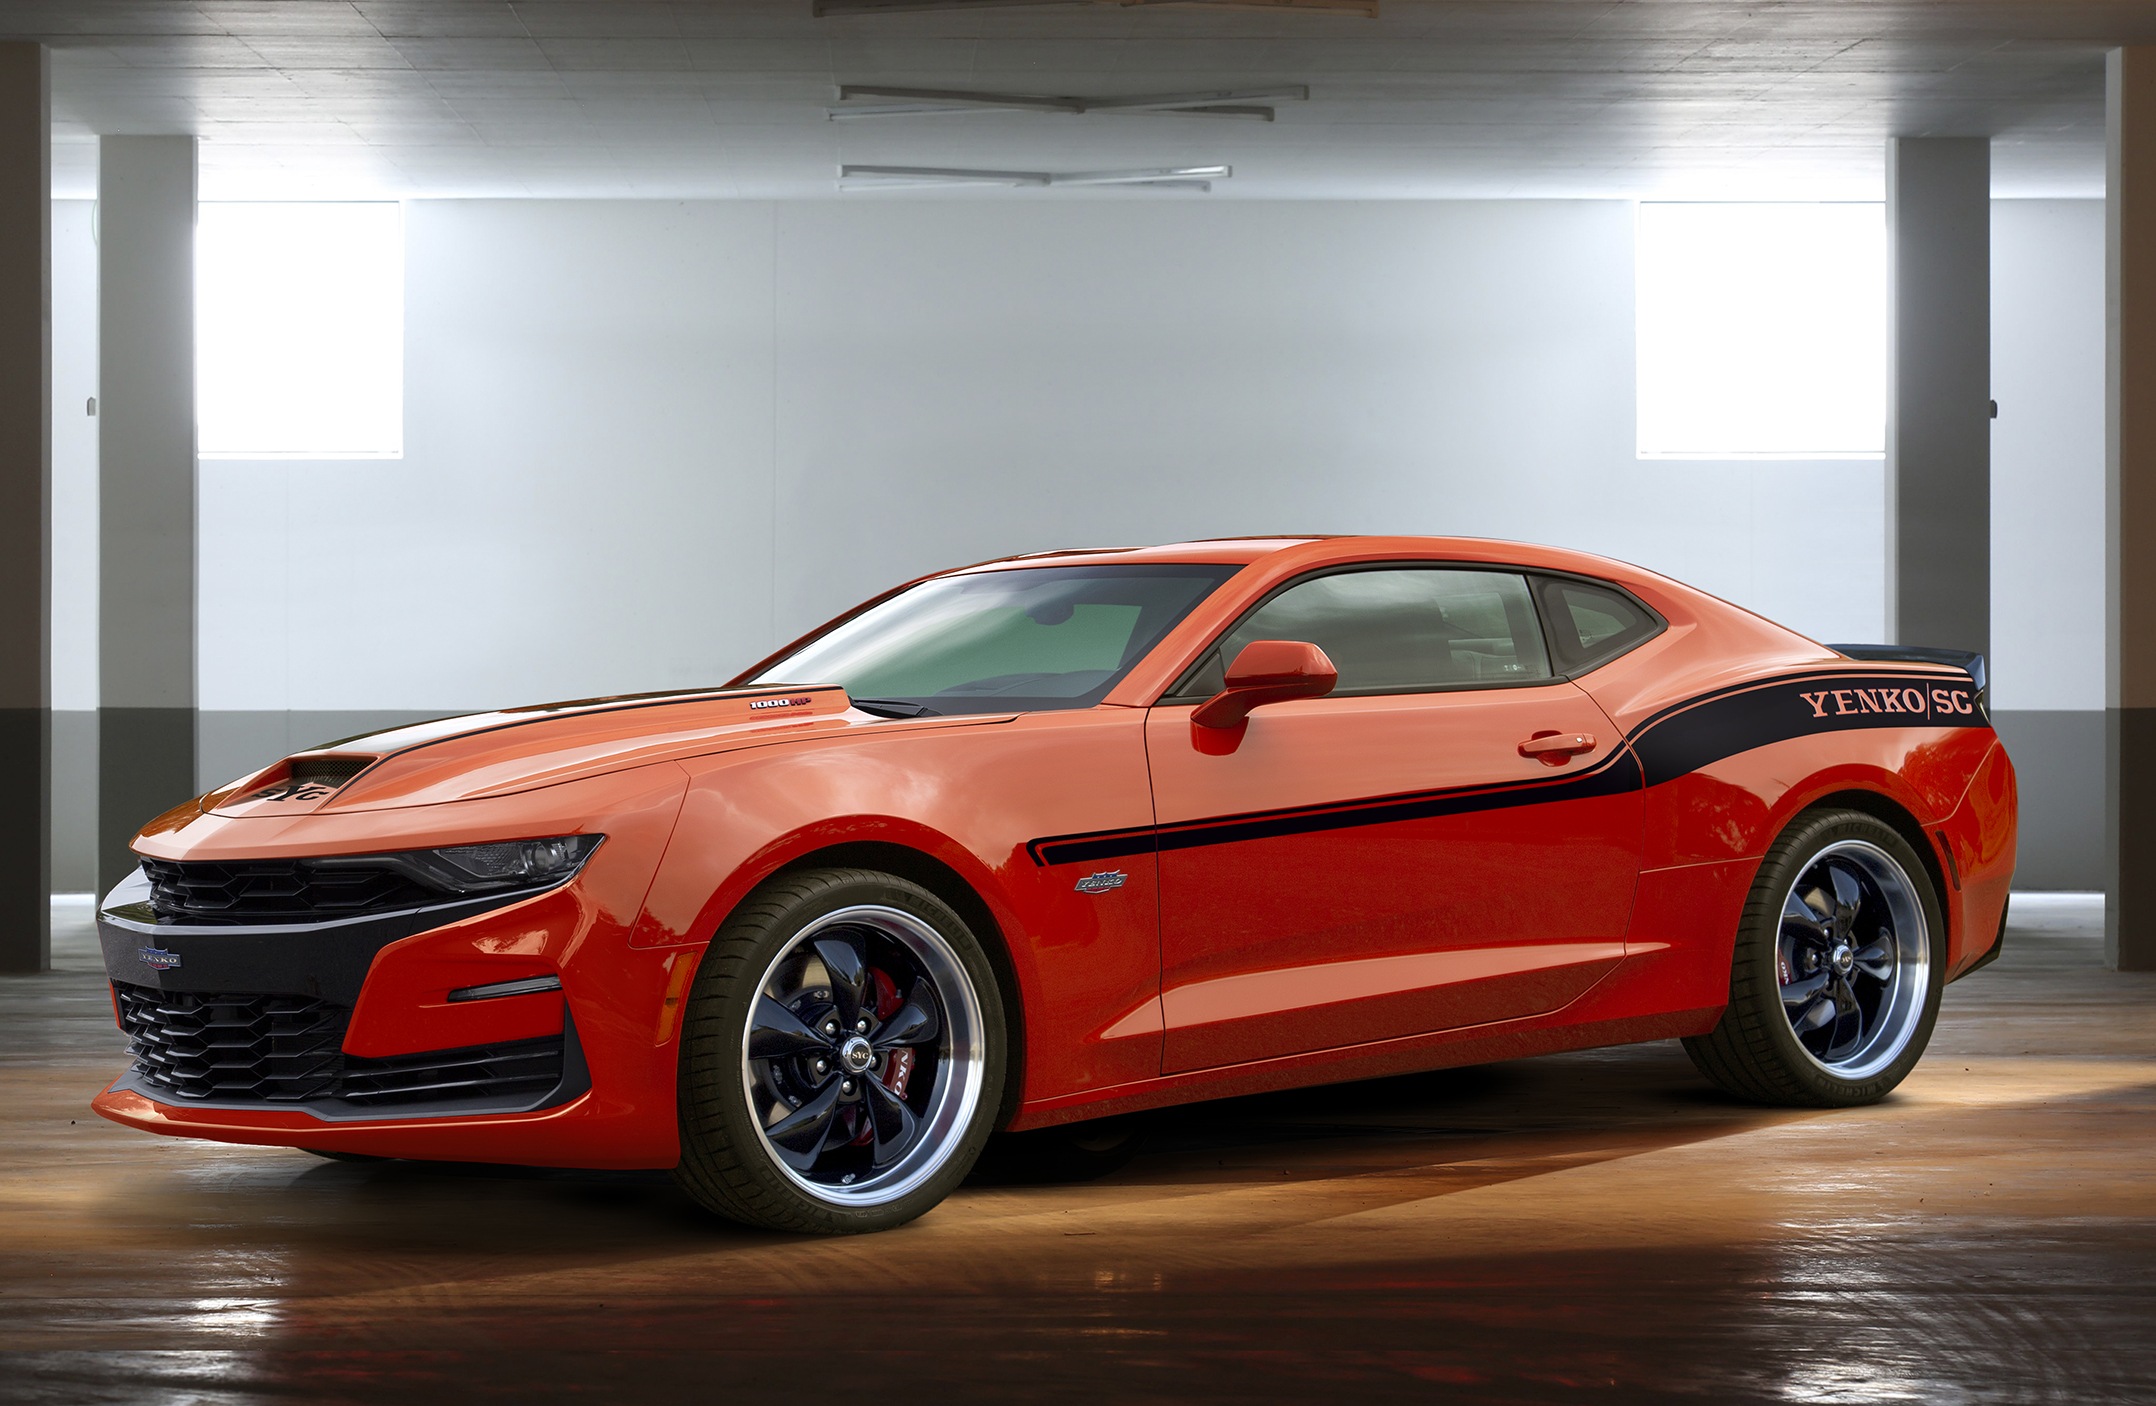 The 1,000-Horsepower 2019 Yenko/SC Camaro Is Now on Sale at a Dealer Near You - The Drive